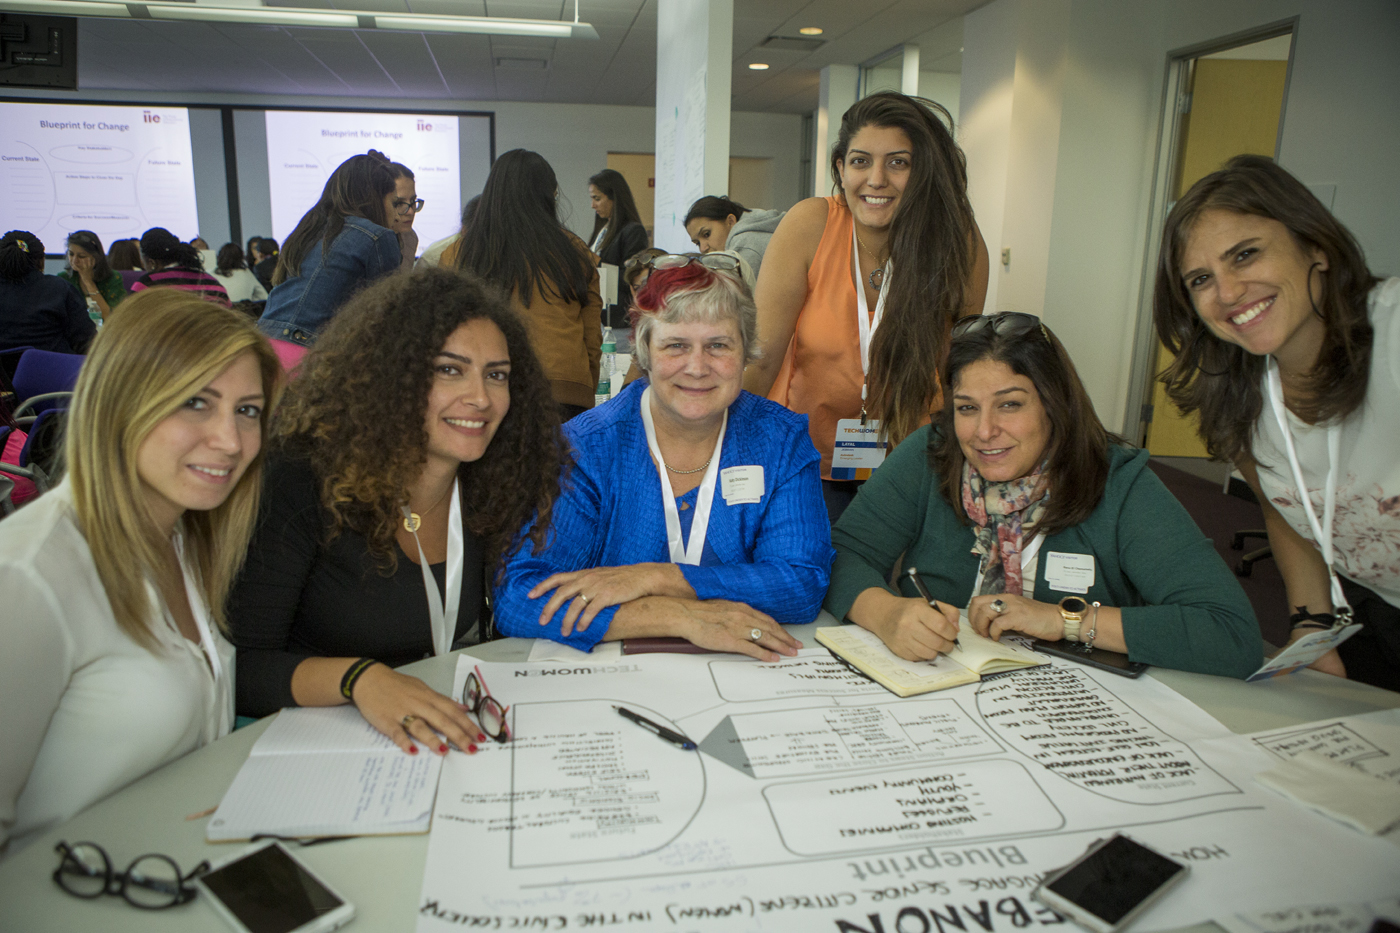 TechWomen Team Lebanon Action Plan Workshop 30 Sep 2017, photo by Saul Bromberger for TechWomen